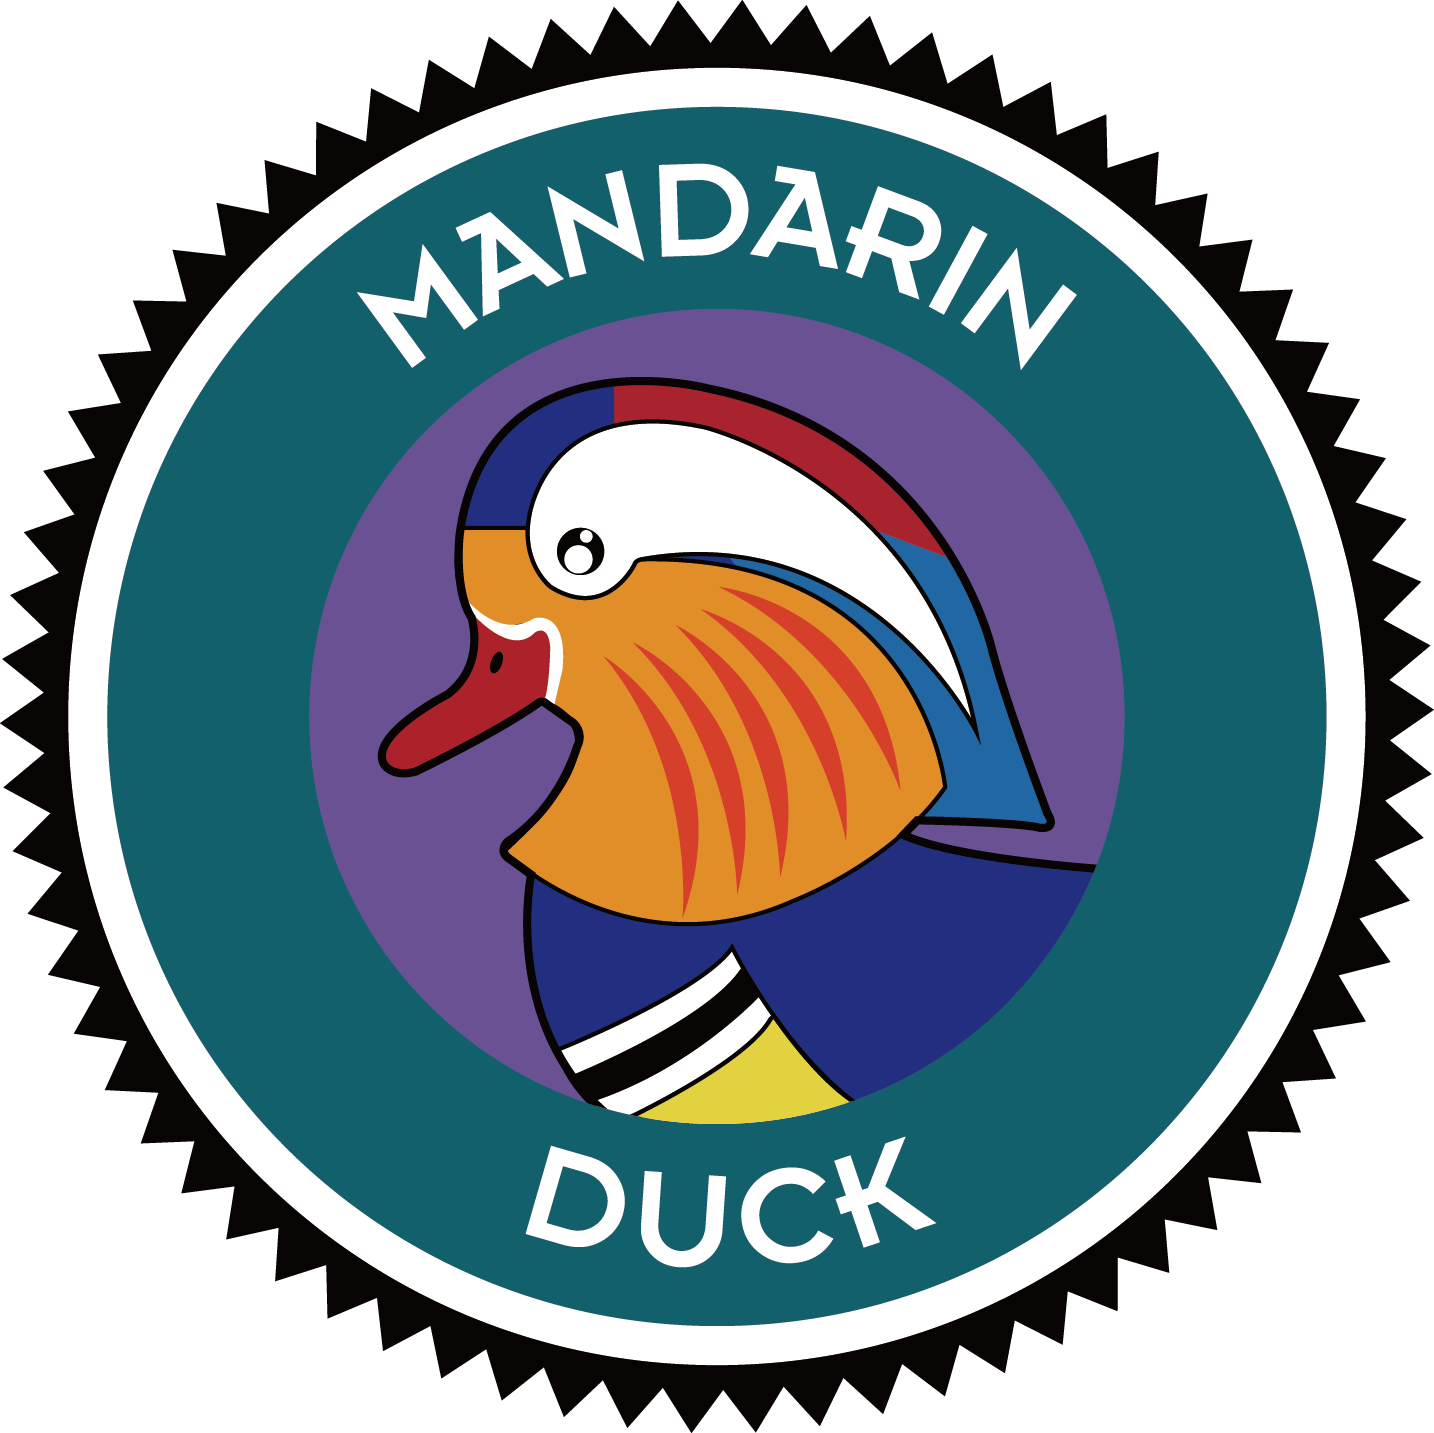 Ducks clipart peking duck. Recurve bow archives mandarin